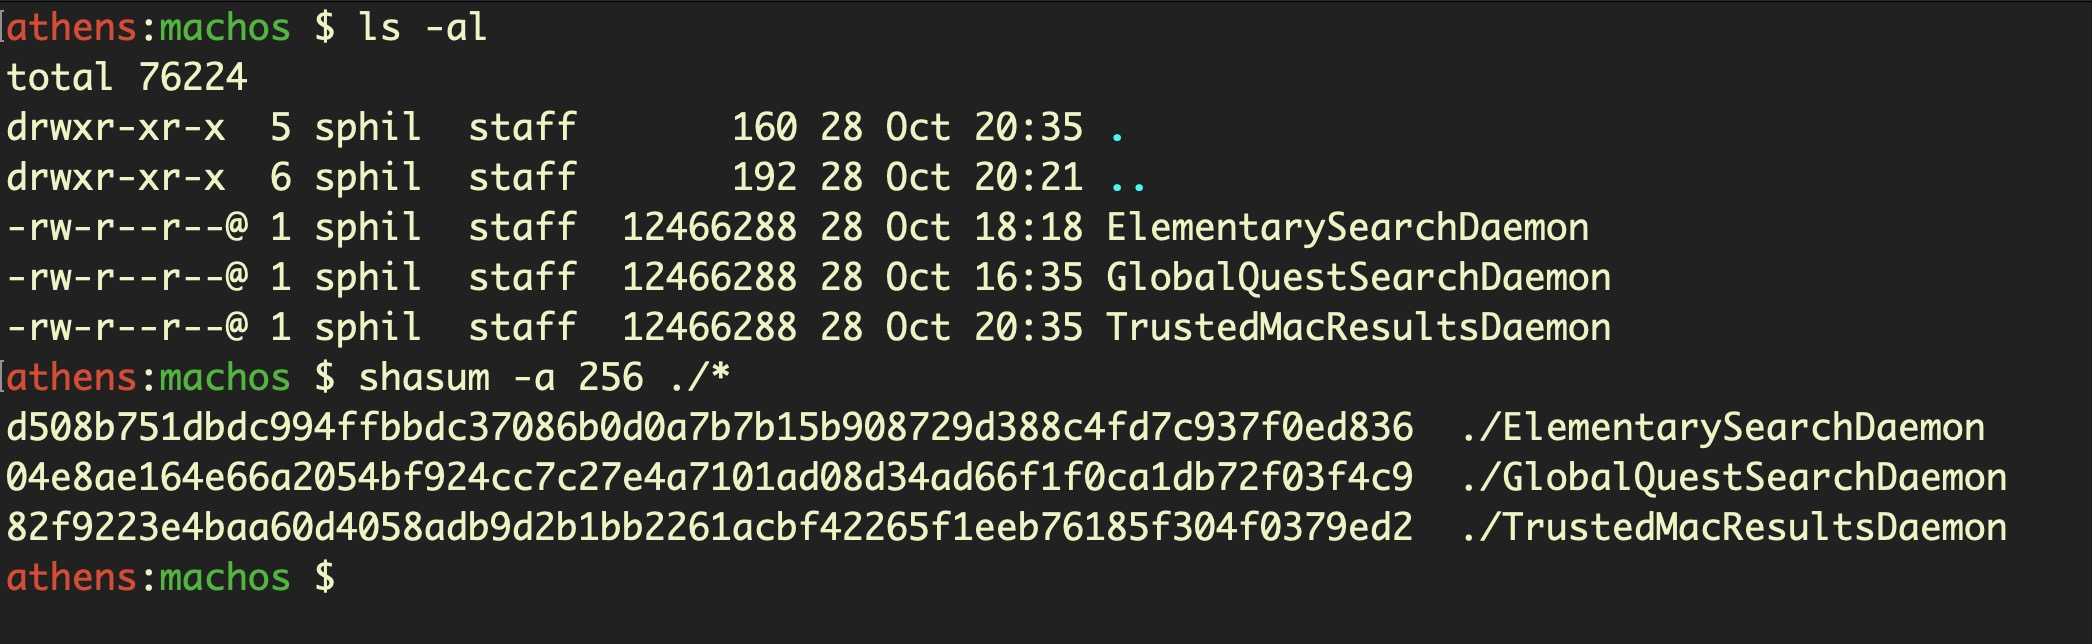 image of AdLoad Hashes